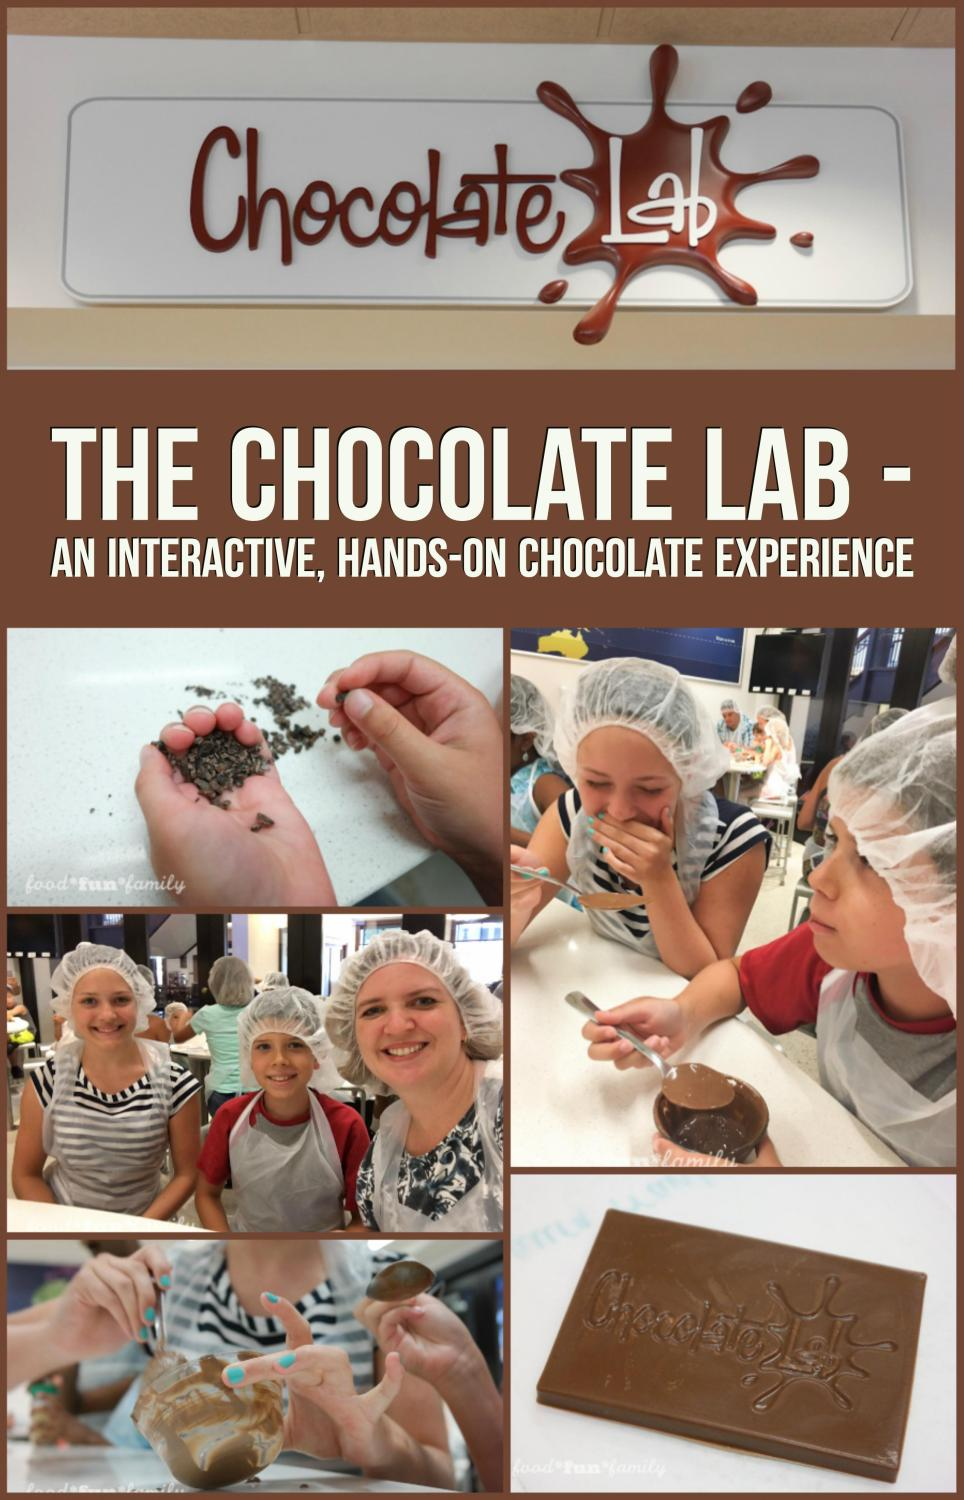 The Chocolate Lab - an interactive, hands-on chocolate experience at the Hershey Story - the Museum on Chocolate Avenue